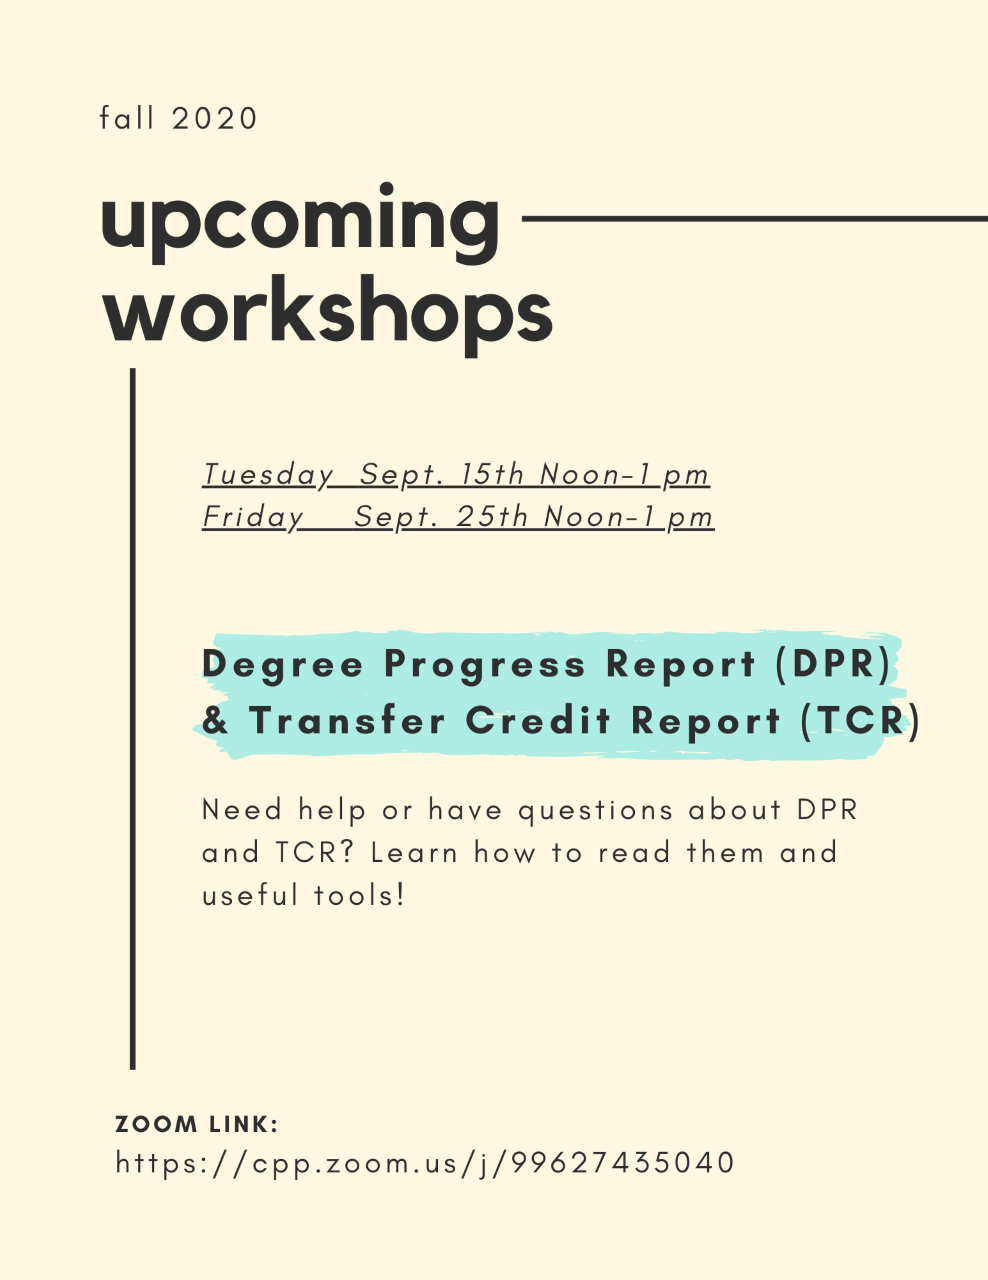 env student success workshop flyer for dpr and tcr workshops